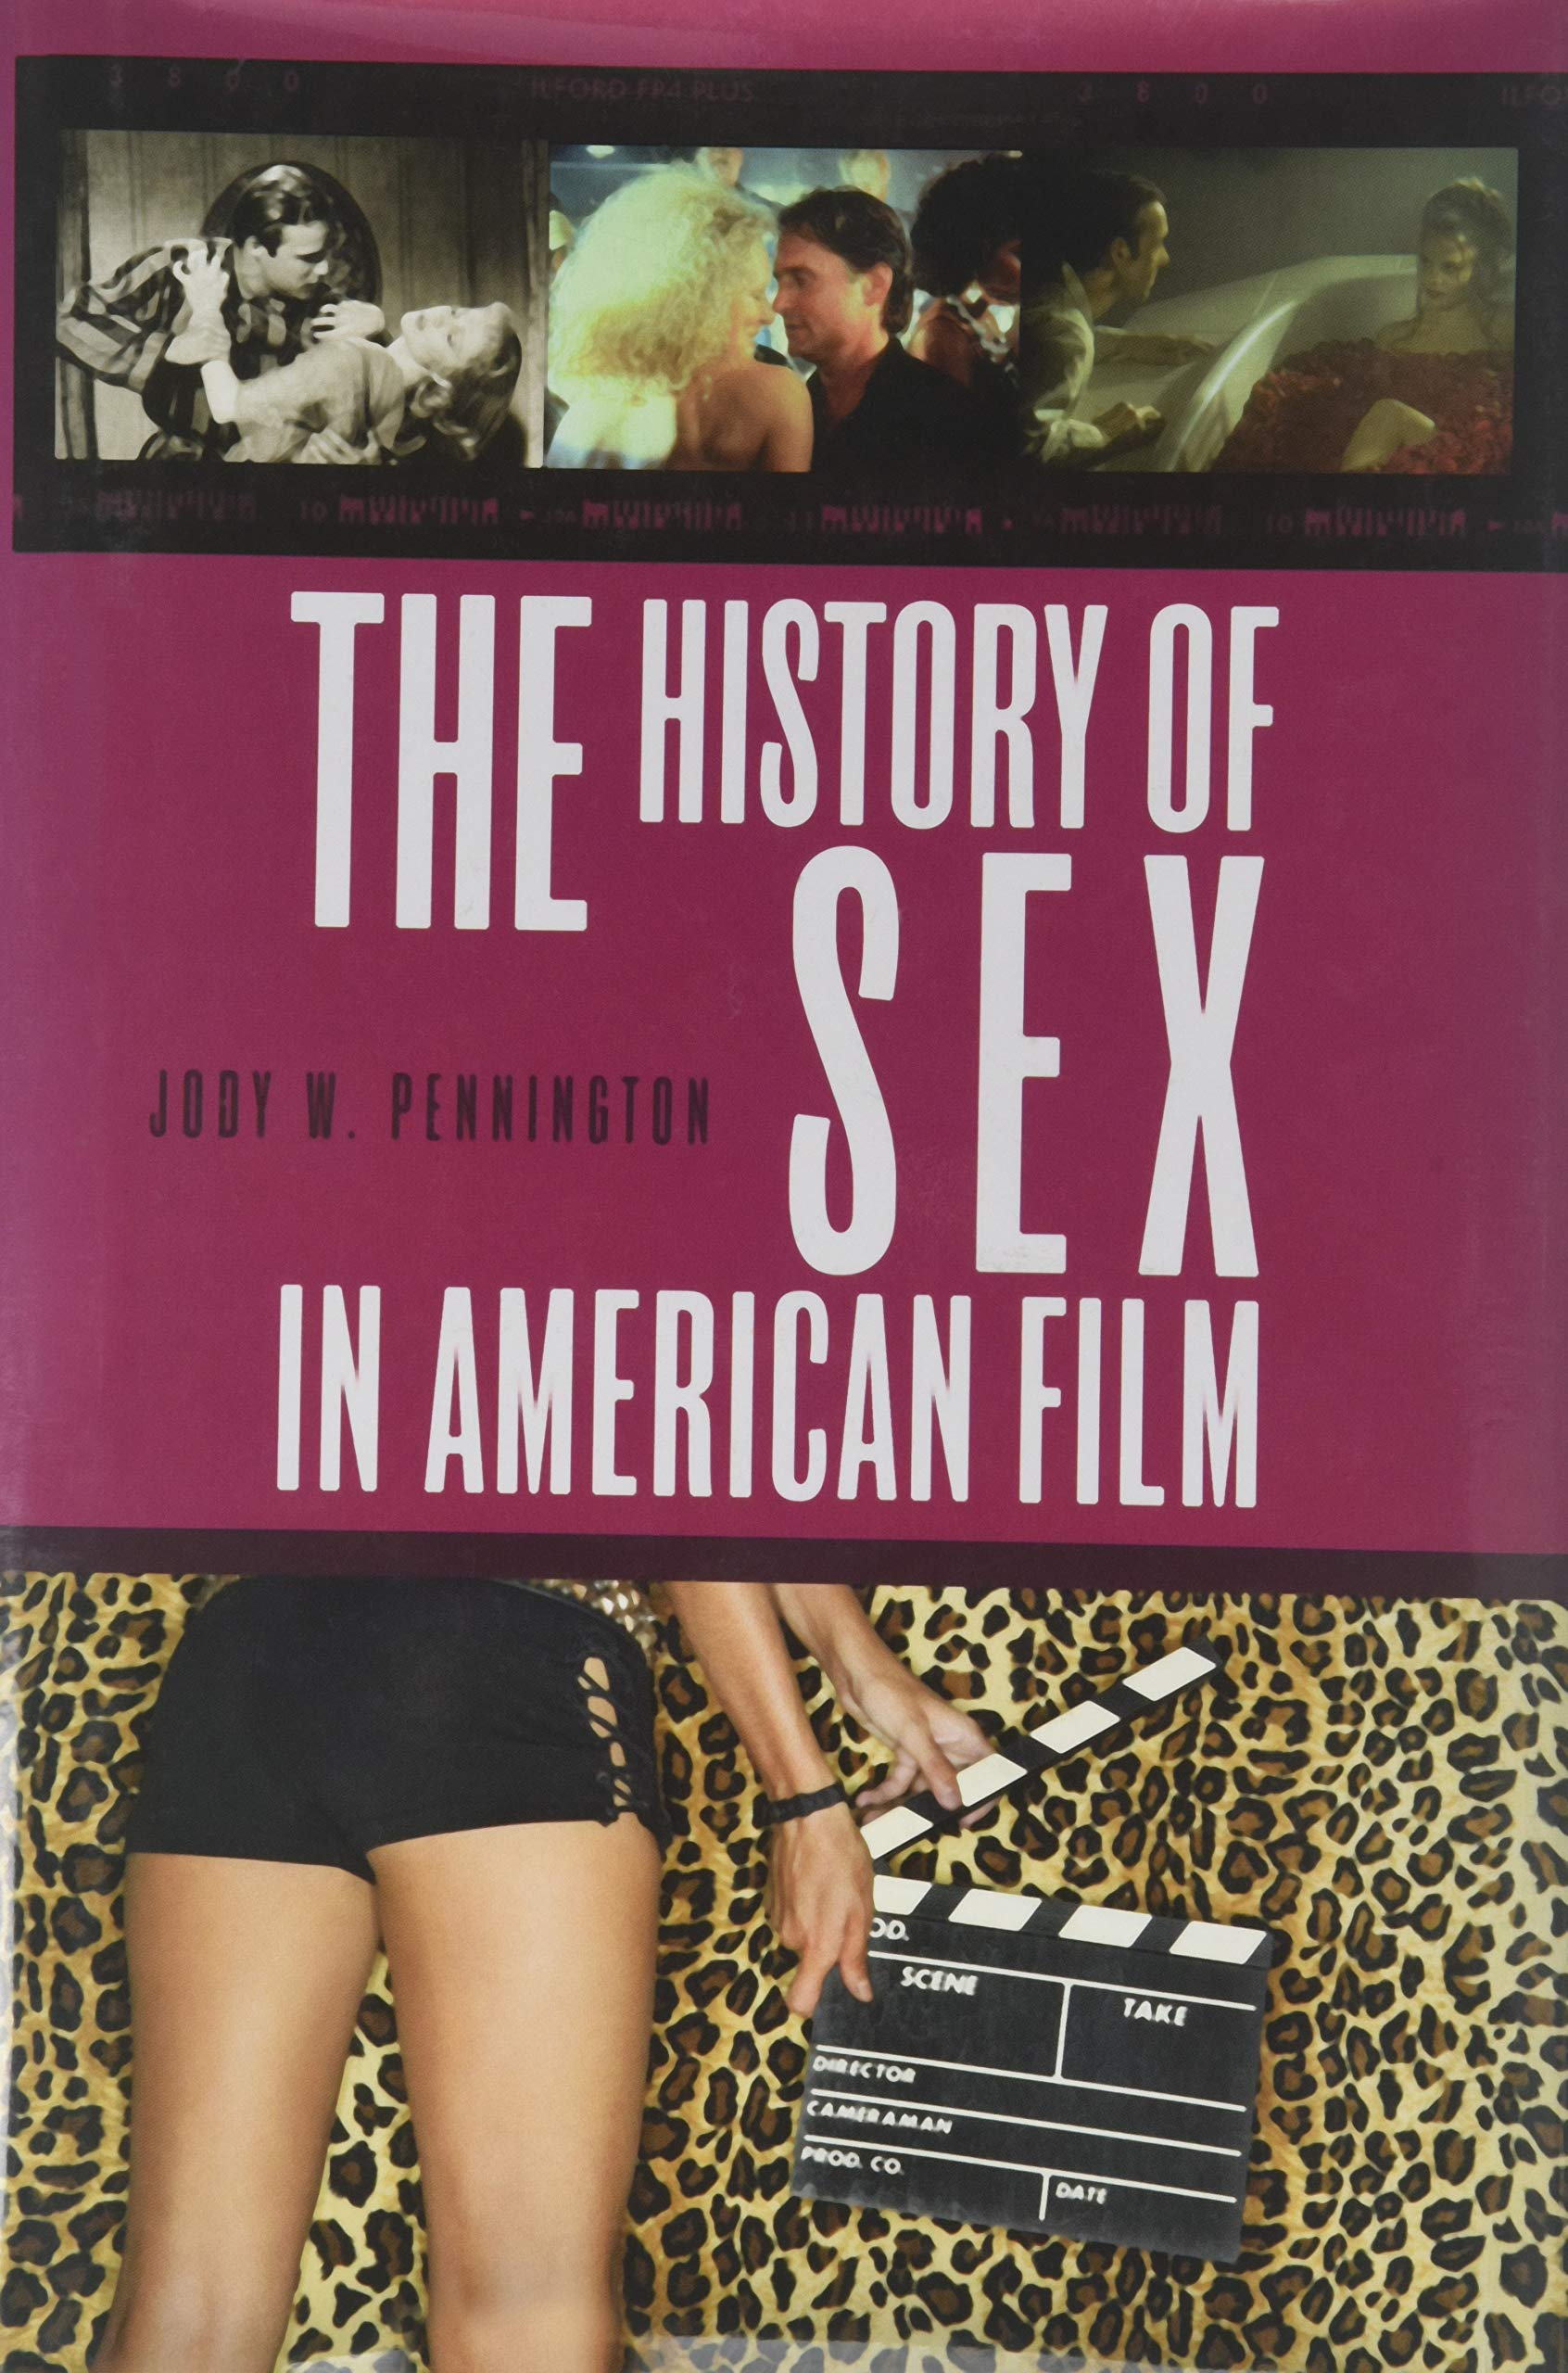 The History of Sex in American Film Hardcover – Dec 30 2010